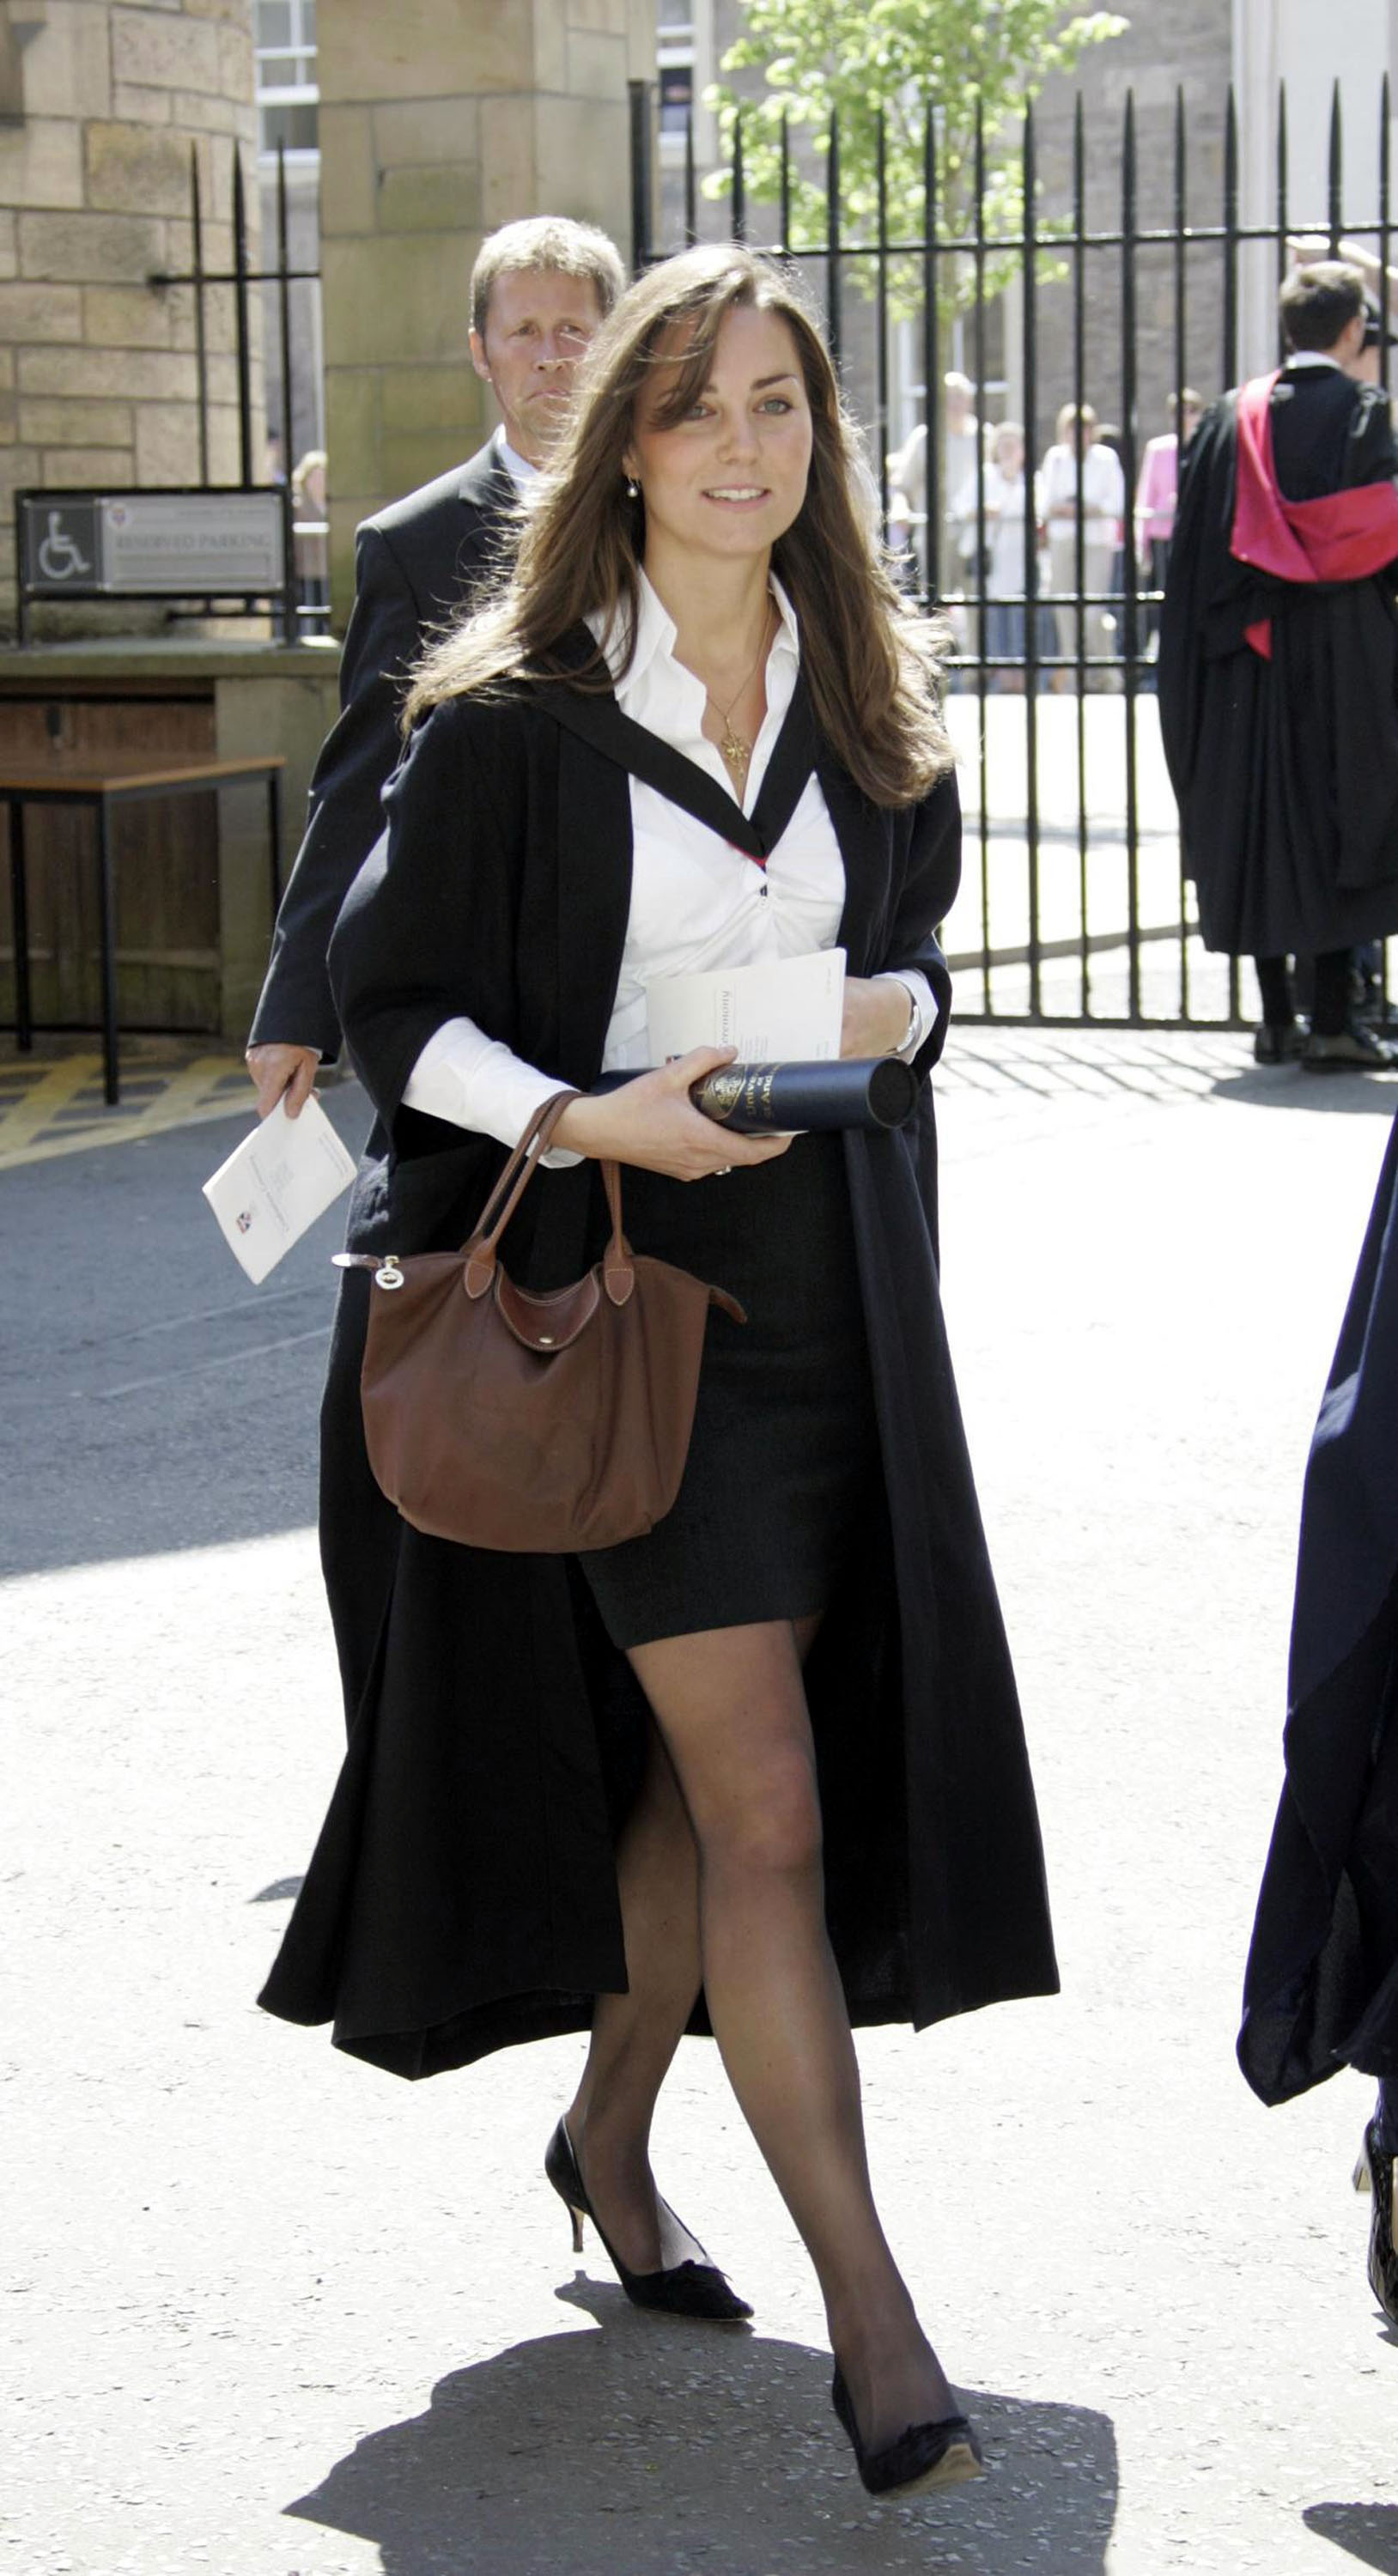 <strong>Graduation Day</strong>                                   Middleton, 23 in this photograph, in her University of St. Andrews graduation-ceremony attire. June 23, 2005